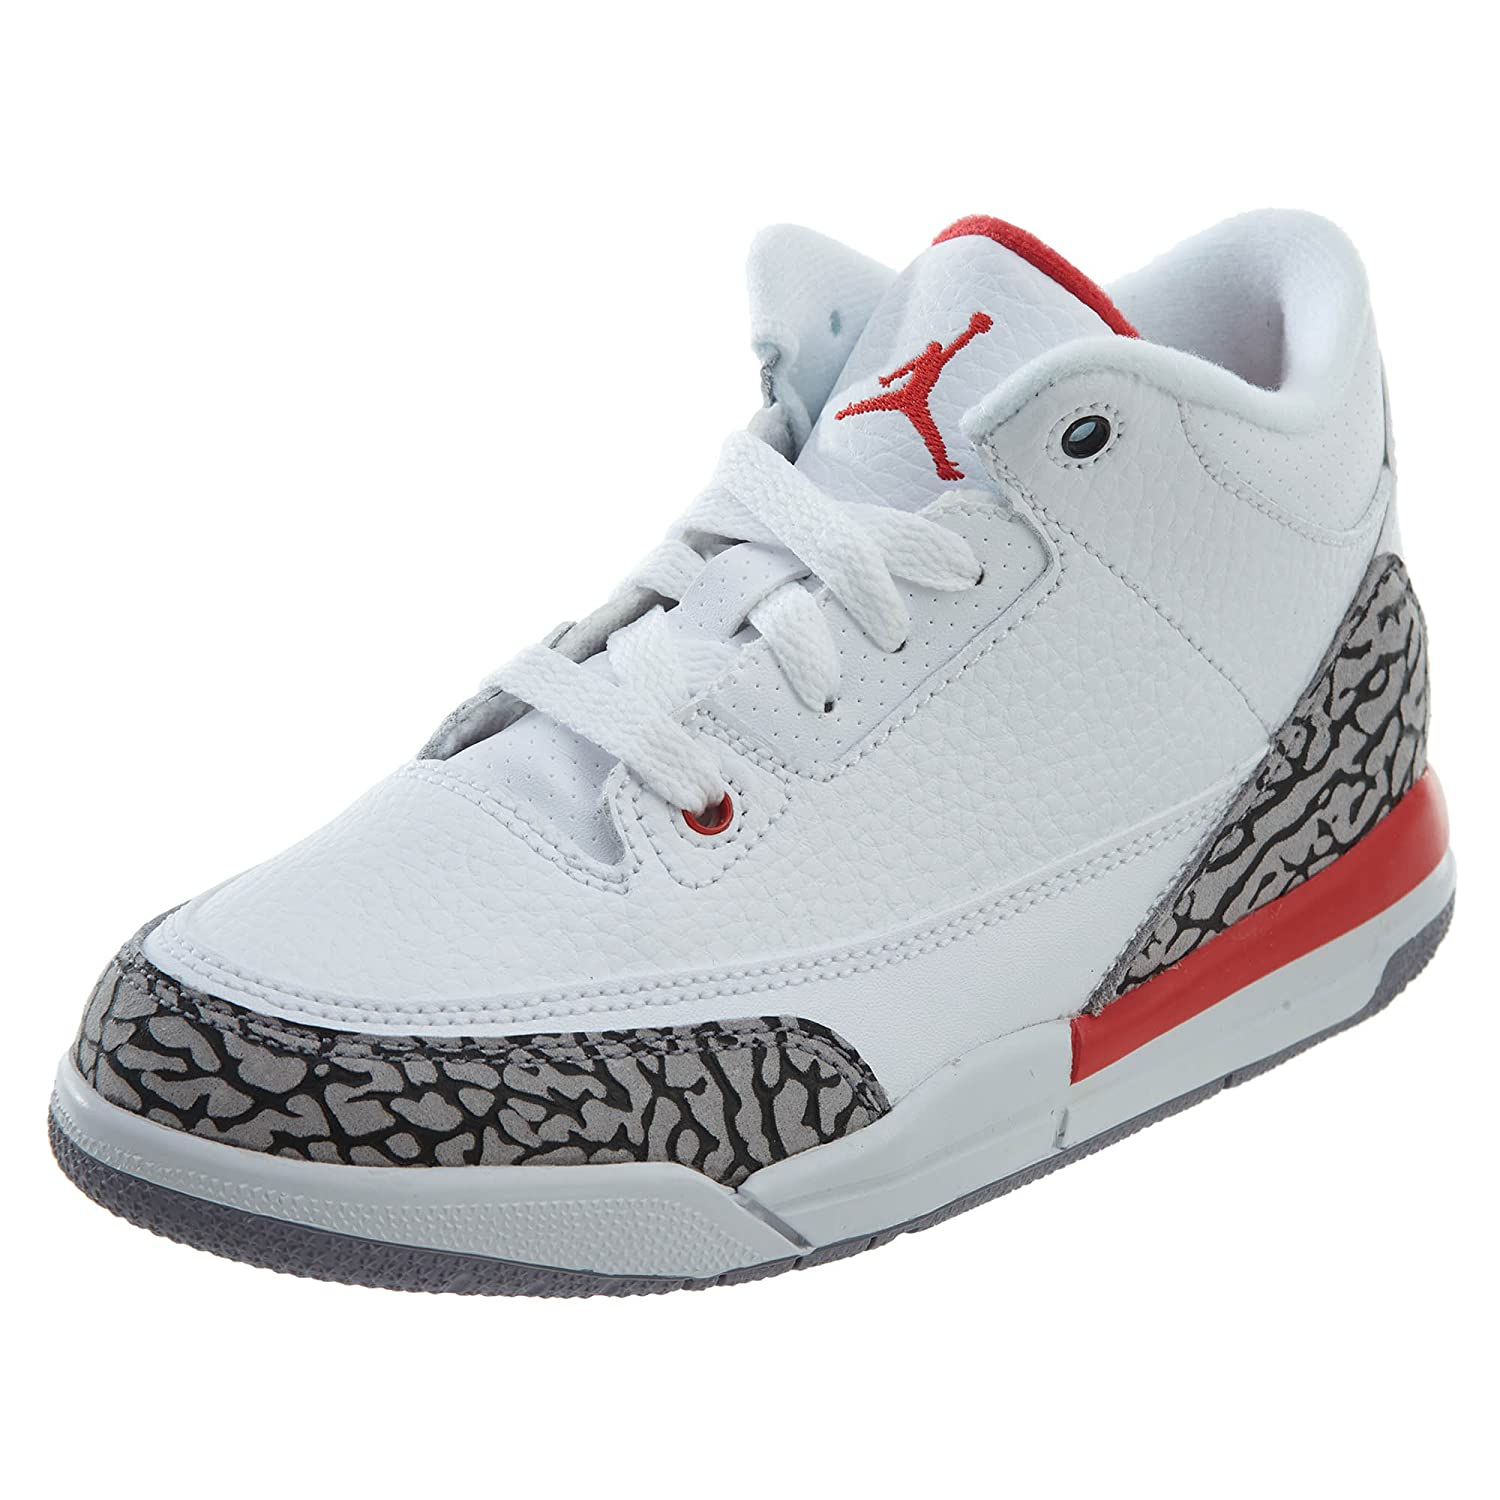 2c4c6f5c113 Amazon.com | Nike Kids Jordan Retro 3